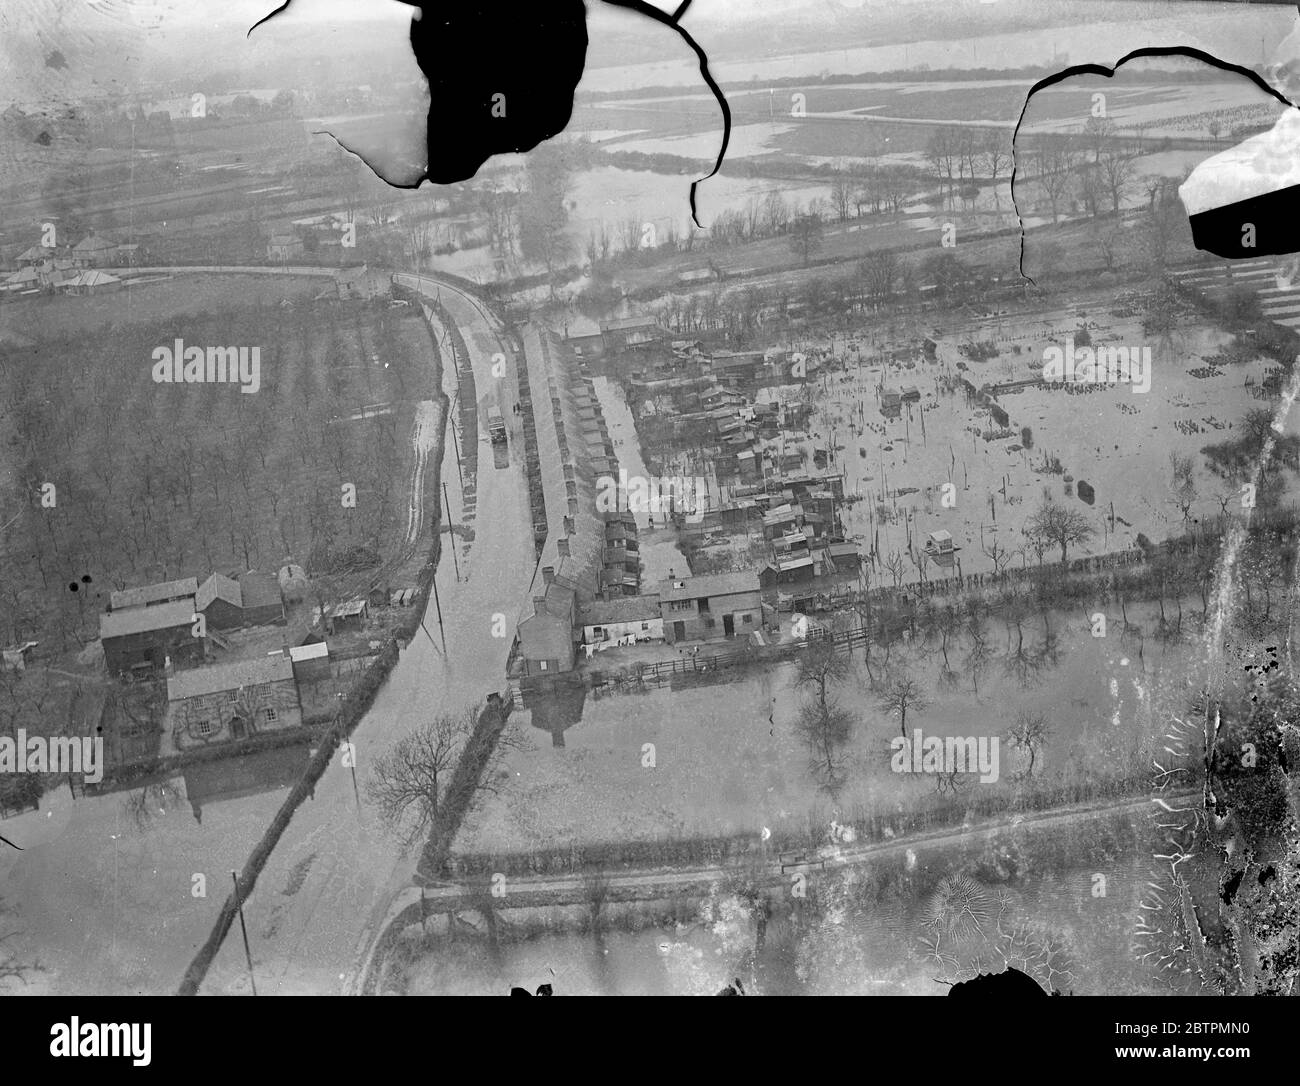 Picture from the air . Floods grow worse in Fen Country . Two hundred and fifty square miles of territory are now flooded in the Fen district , and several villages have been evacuated . Desperate efforts are still being made by the tired bands of workers to prevent the situation from growing even worse . Photo shows , houses surrounded by the floods near Earith . 17 March 1937 Stock Photo